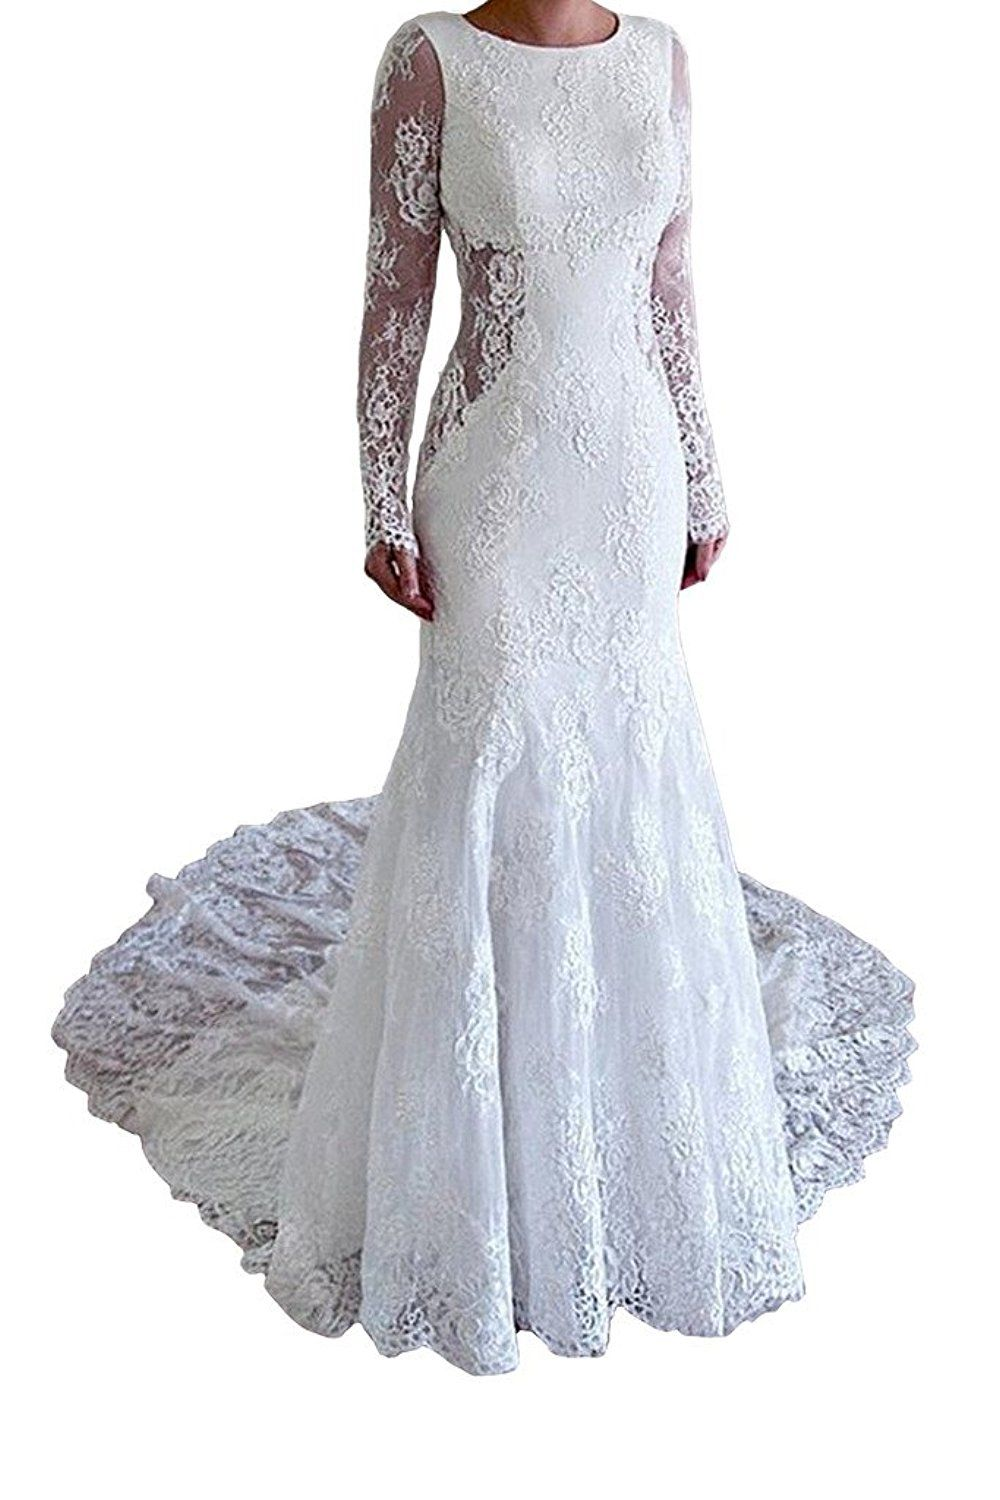 Menoqo womenus sexy lace mermaid long sleeve backless bridal wedding